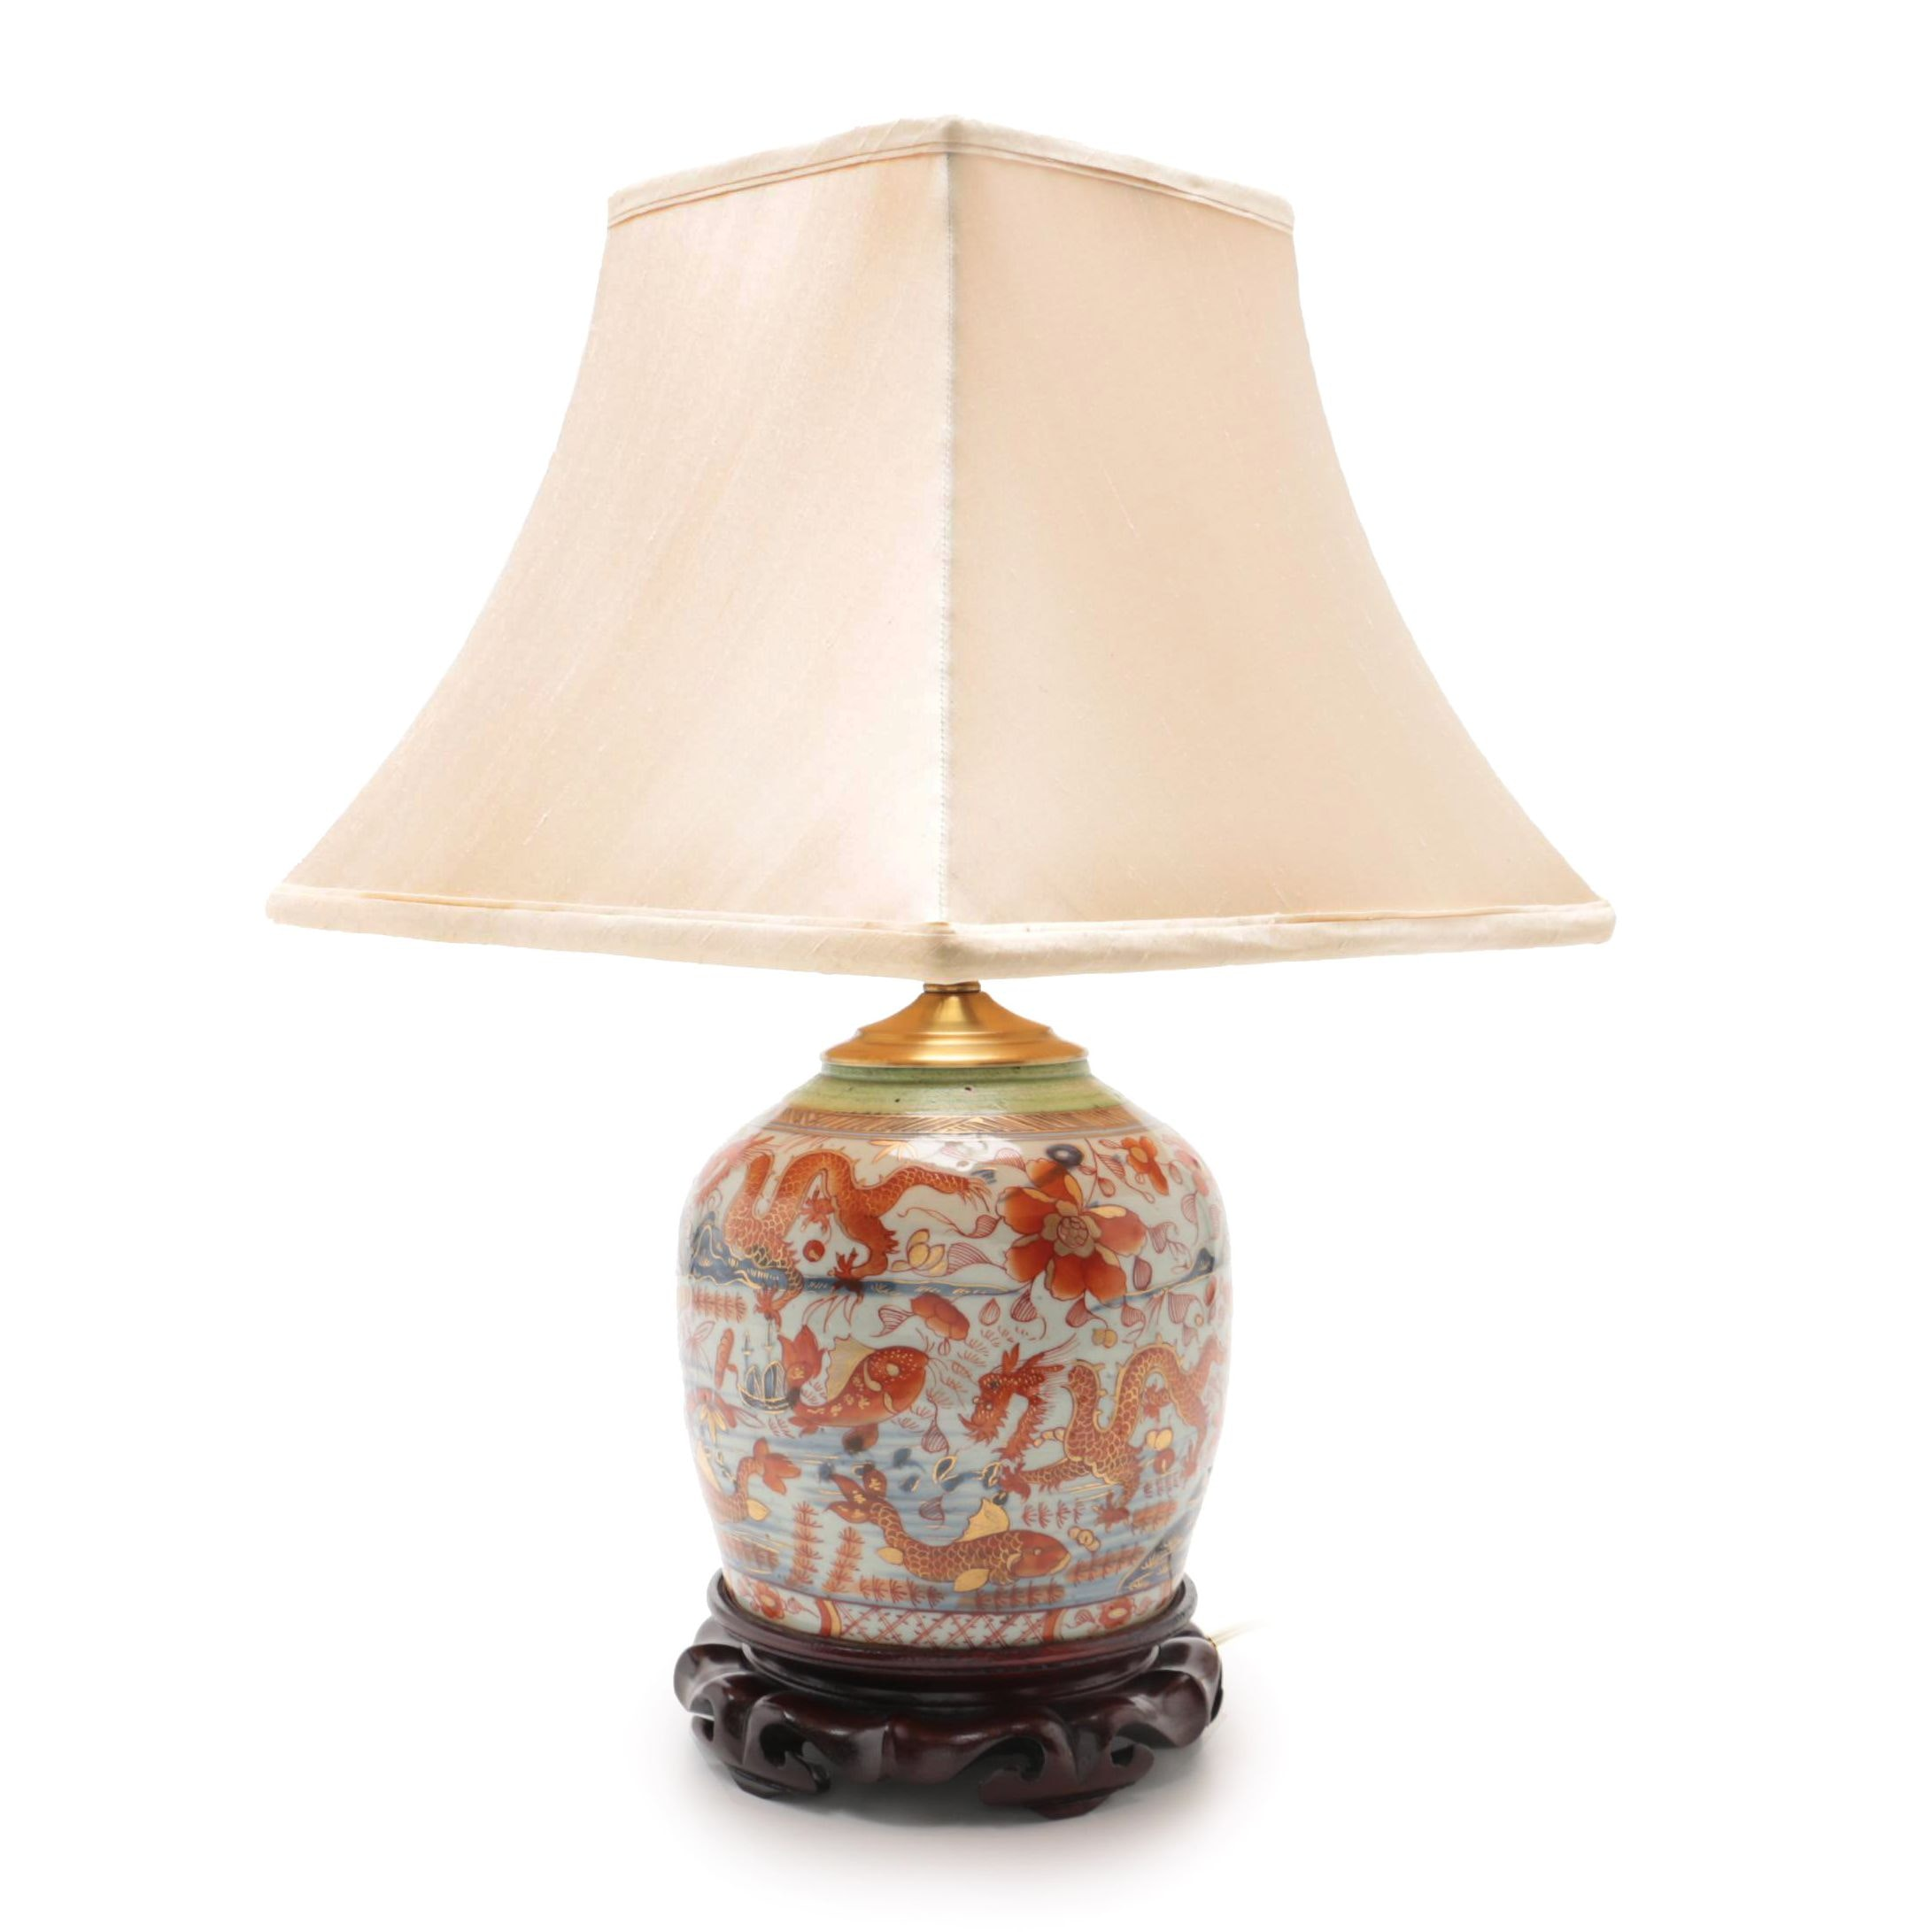 Chinese Porcelain Table Lamp with Beige Silk Shade